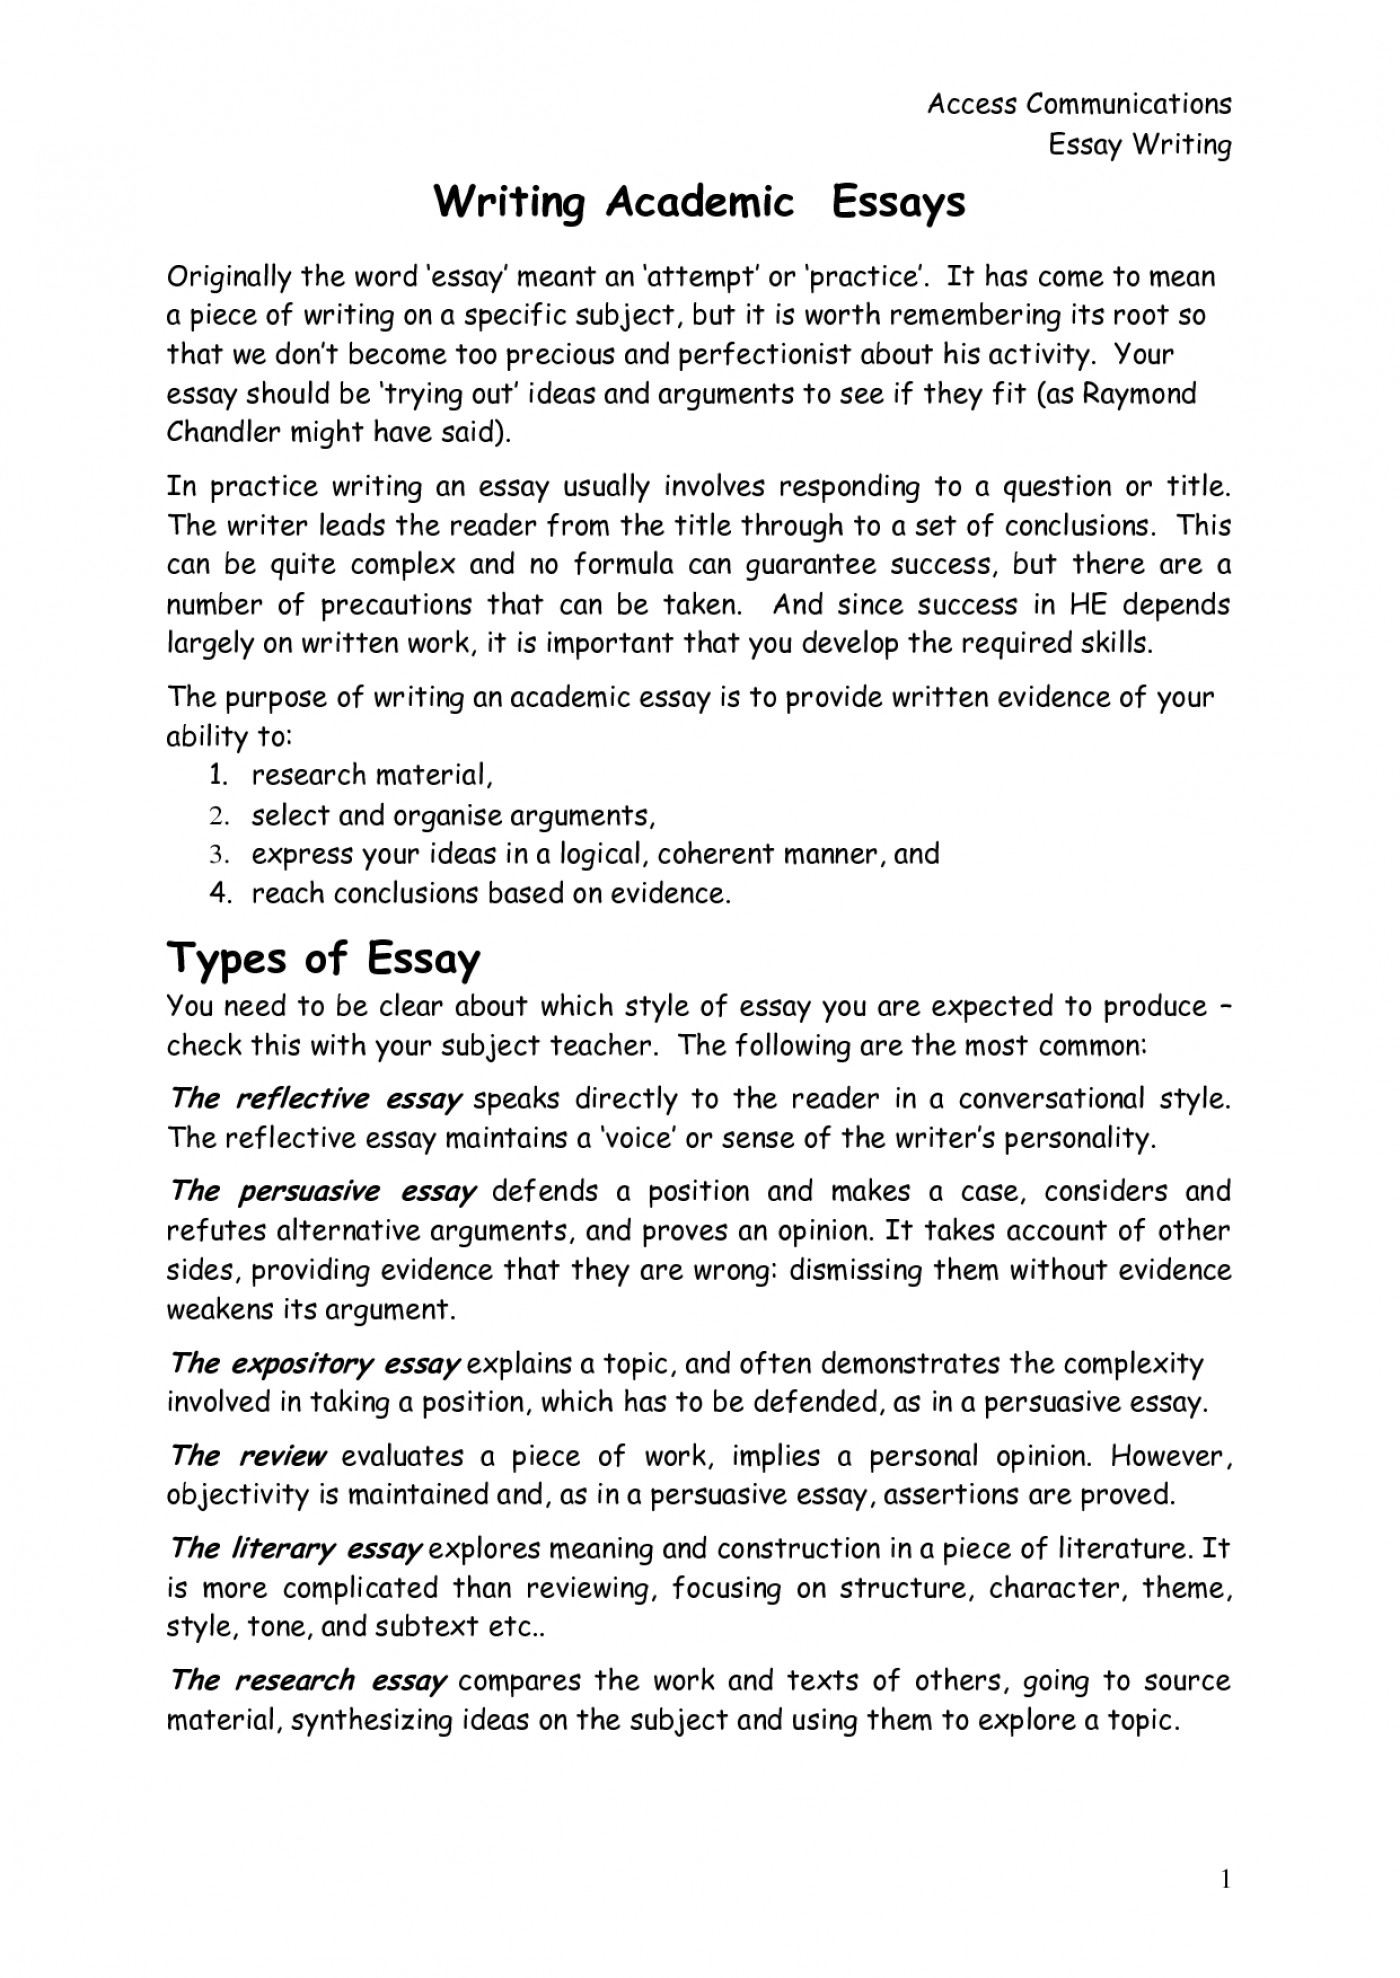 016 Reflective Essay On Academic Writings Beautiful Examples About Life Pdf Apa 1400